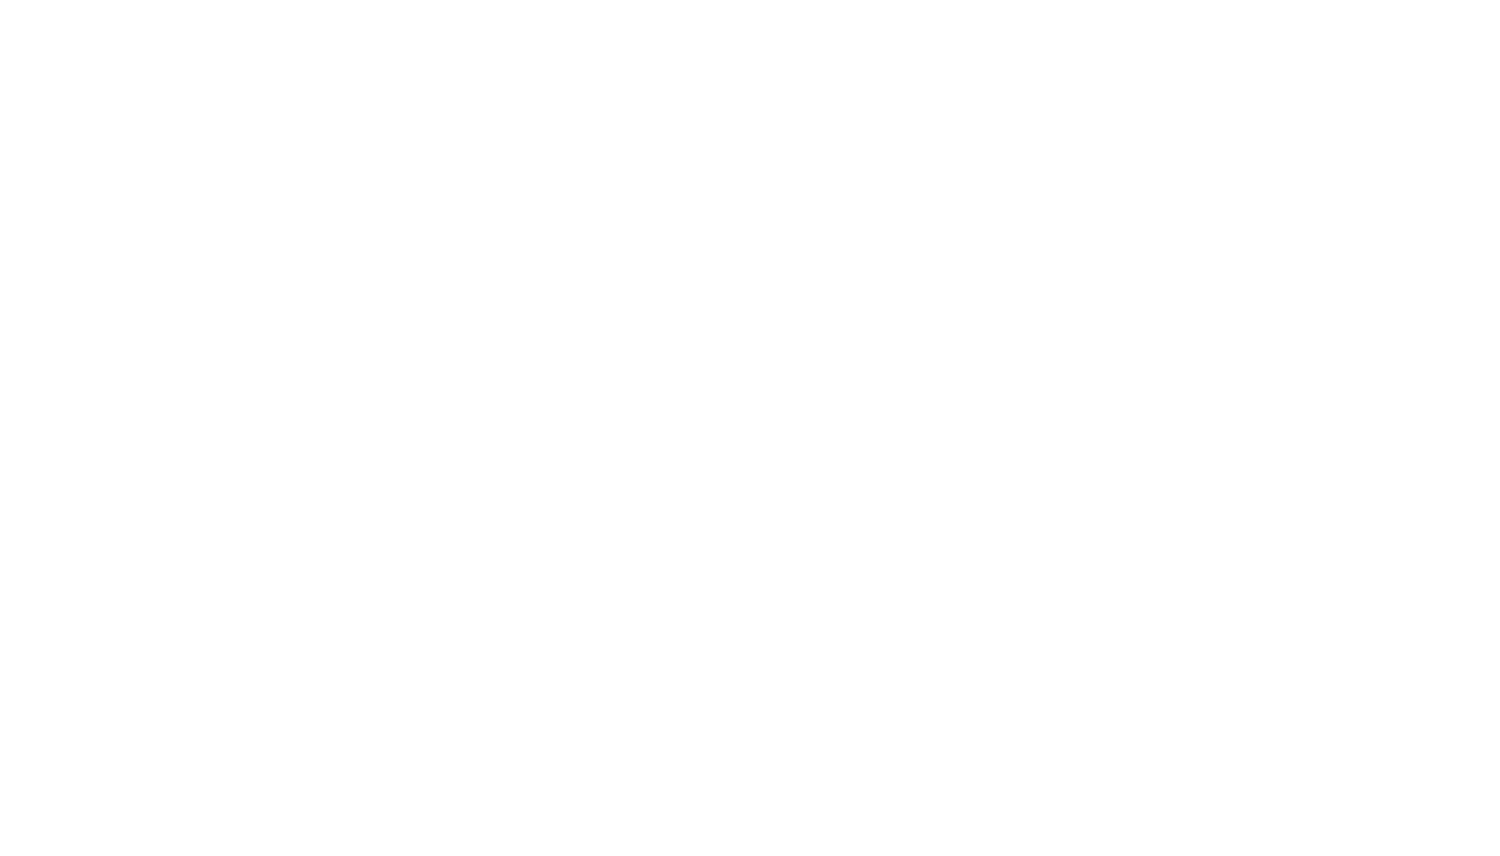 Colored Bird Institute™